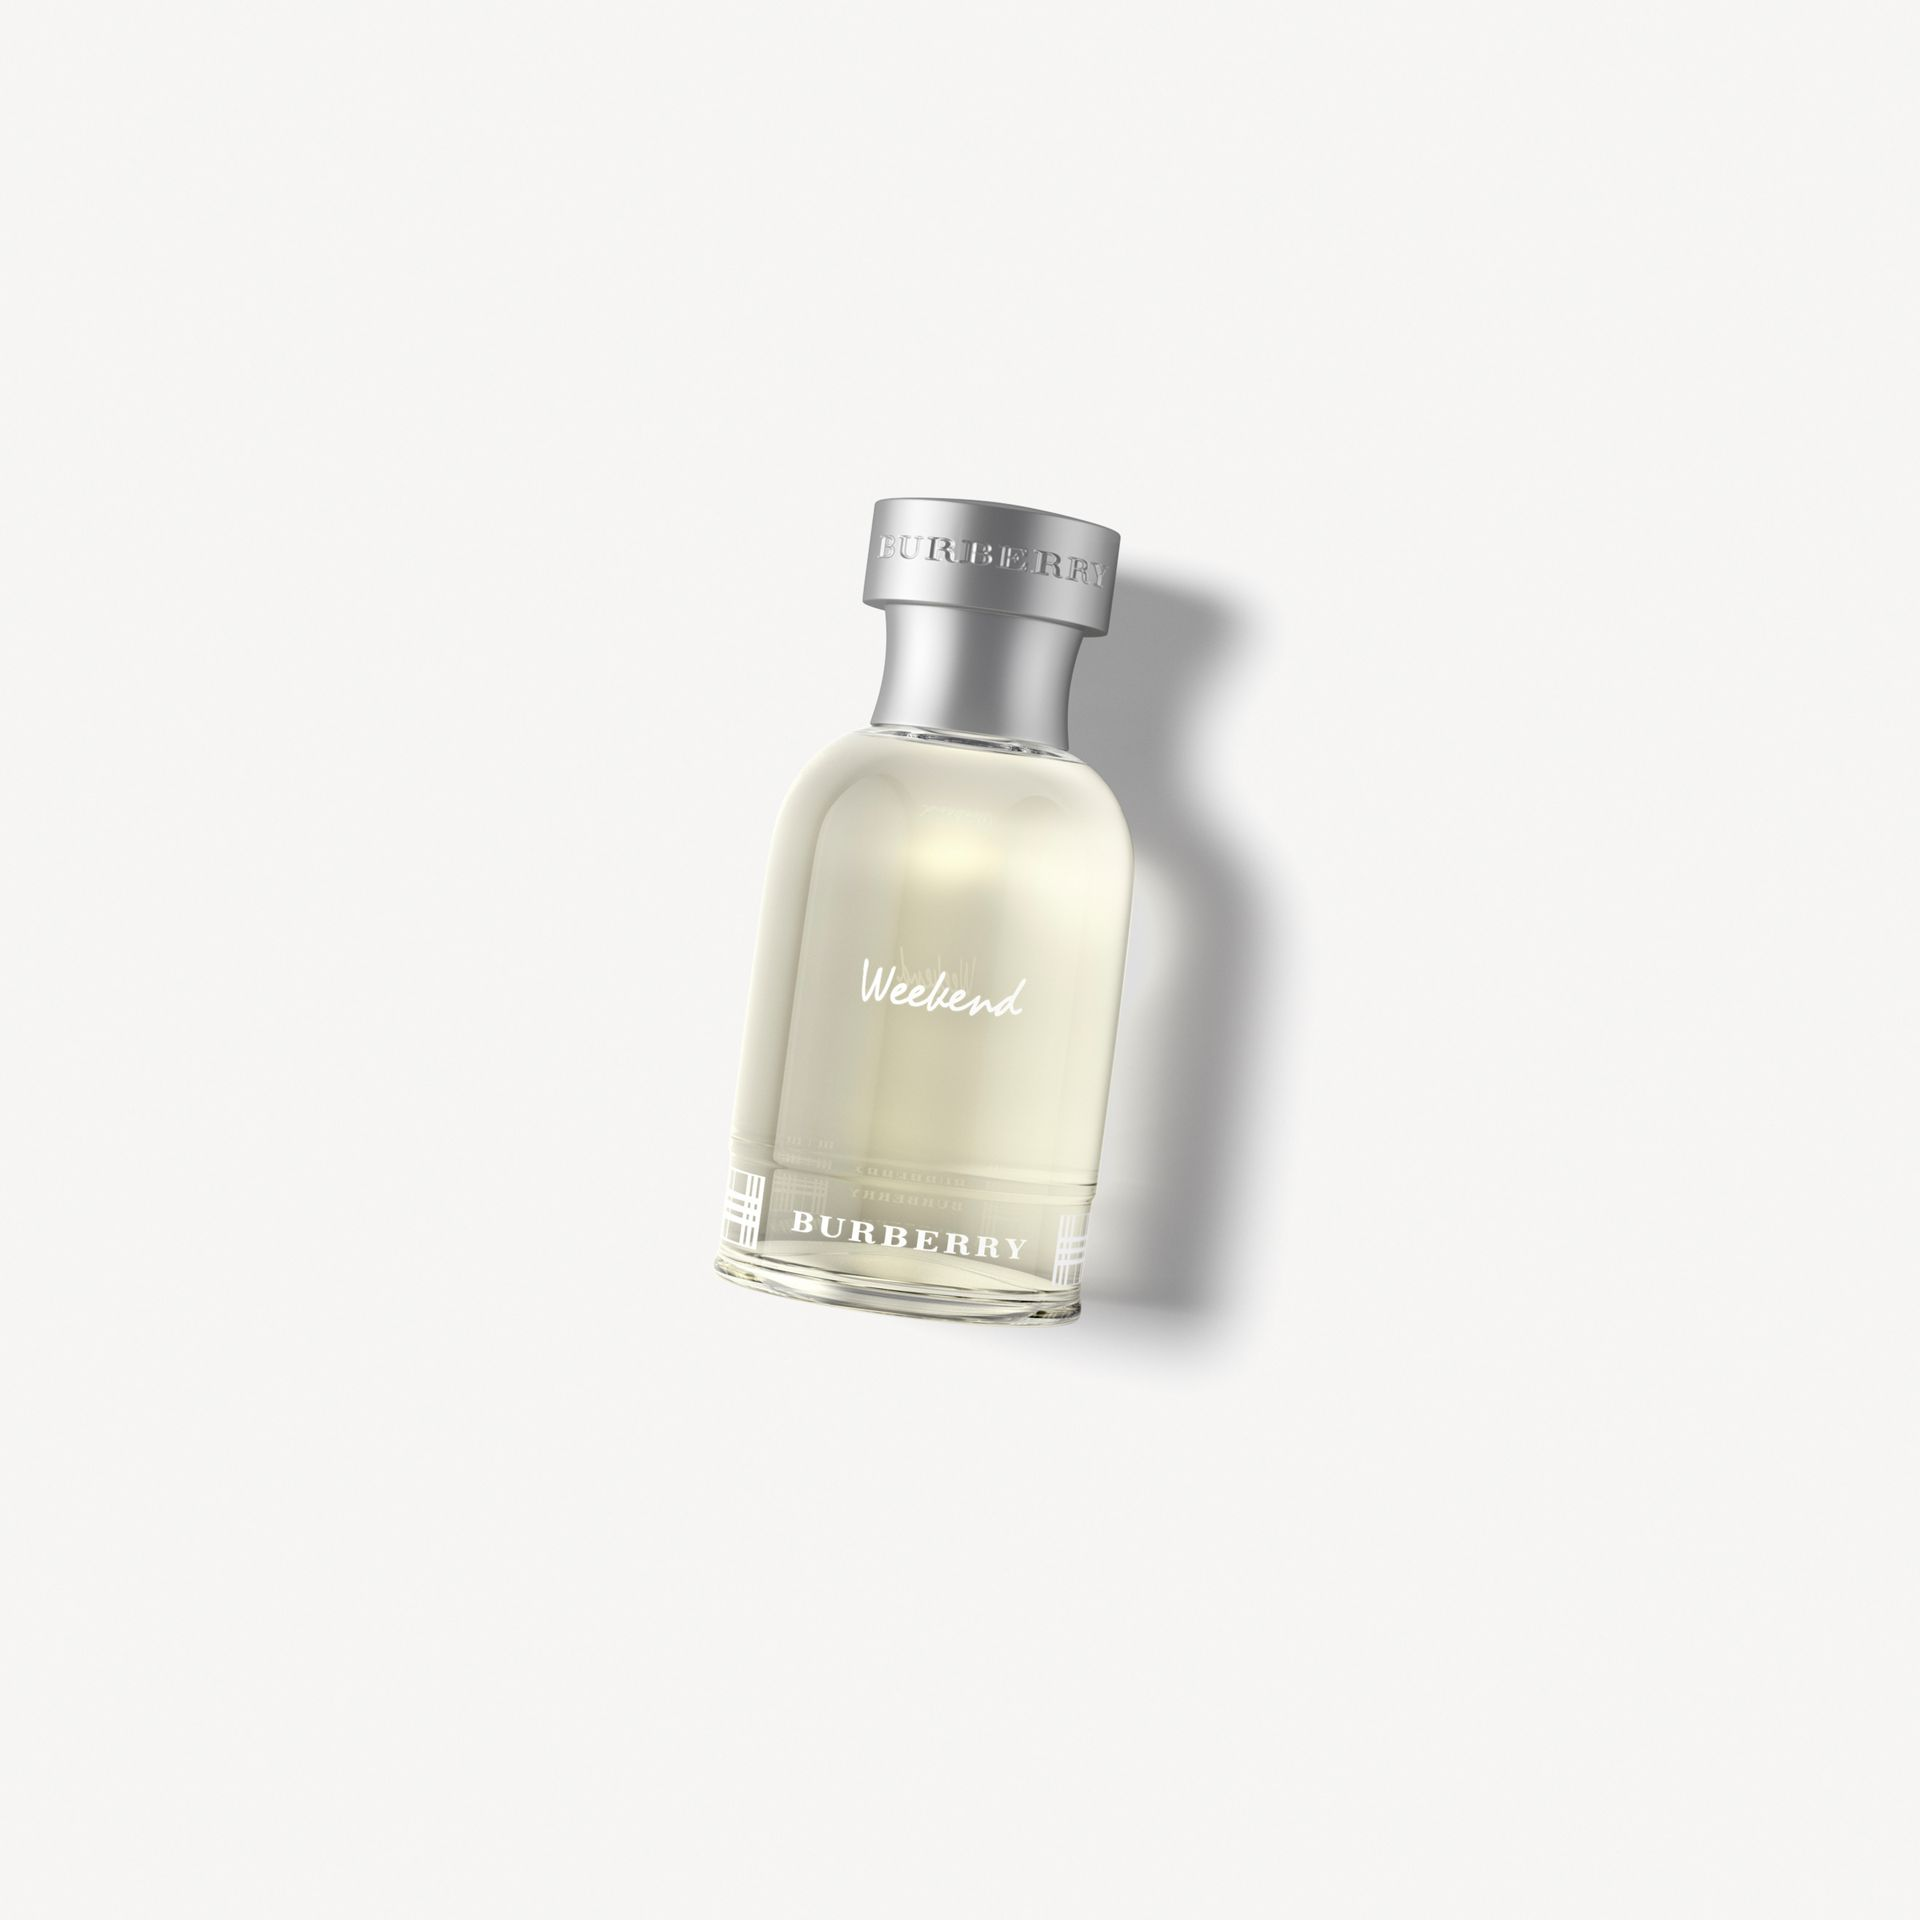 Burberry Weekend Eau de Toilette 50ml - gallery image 1